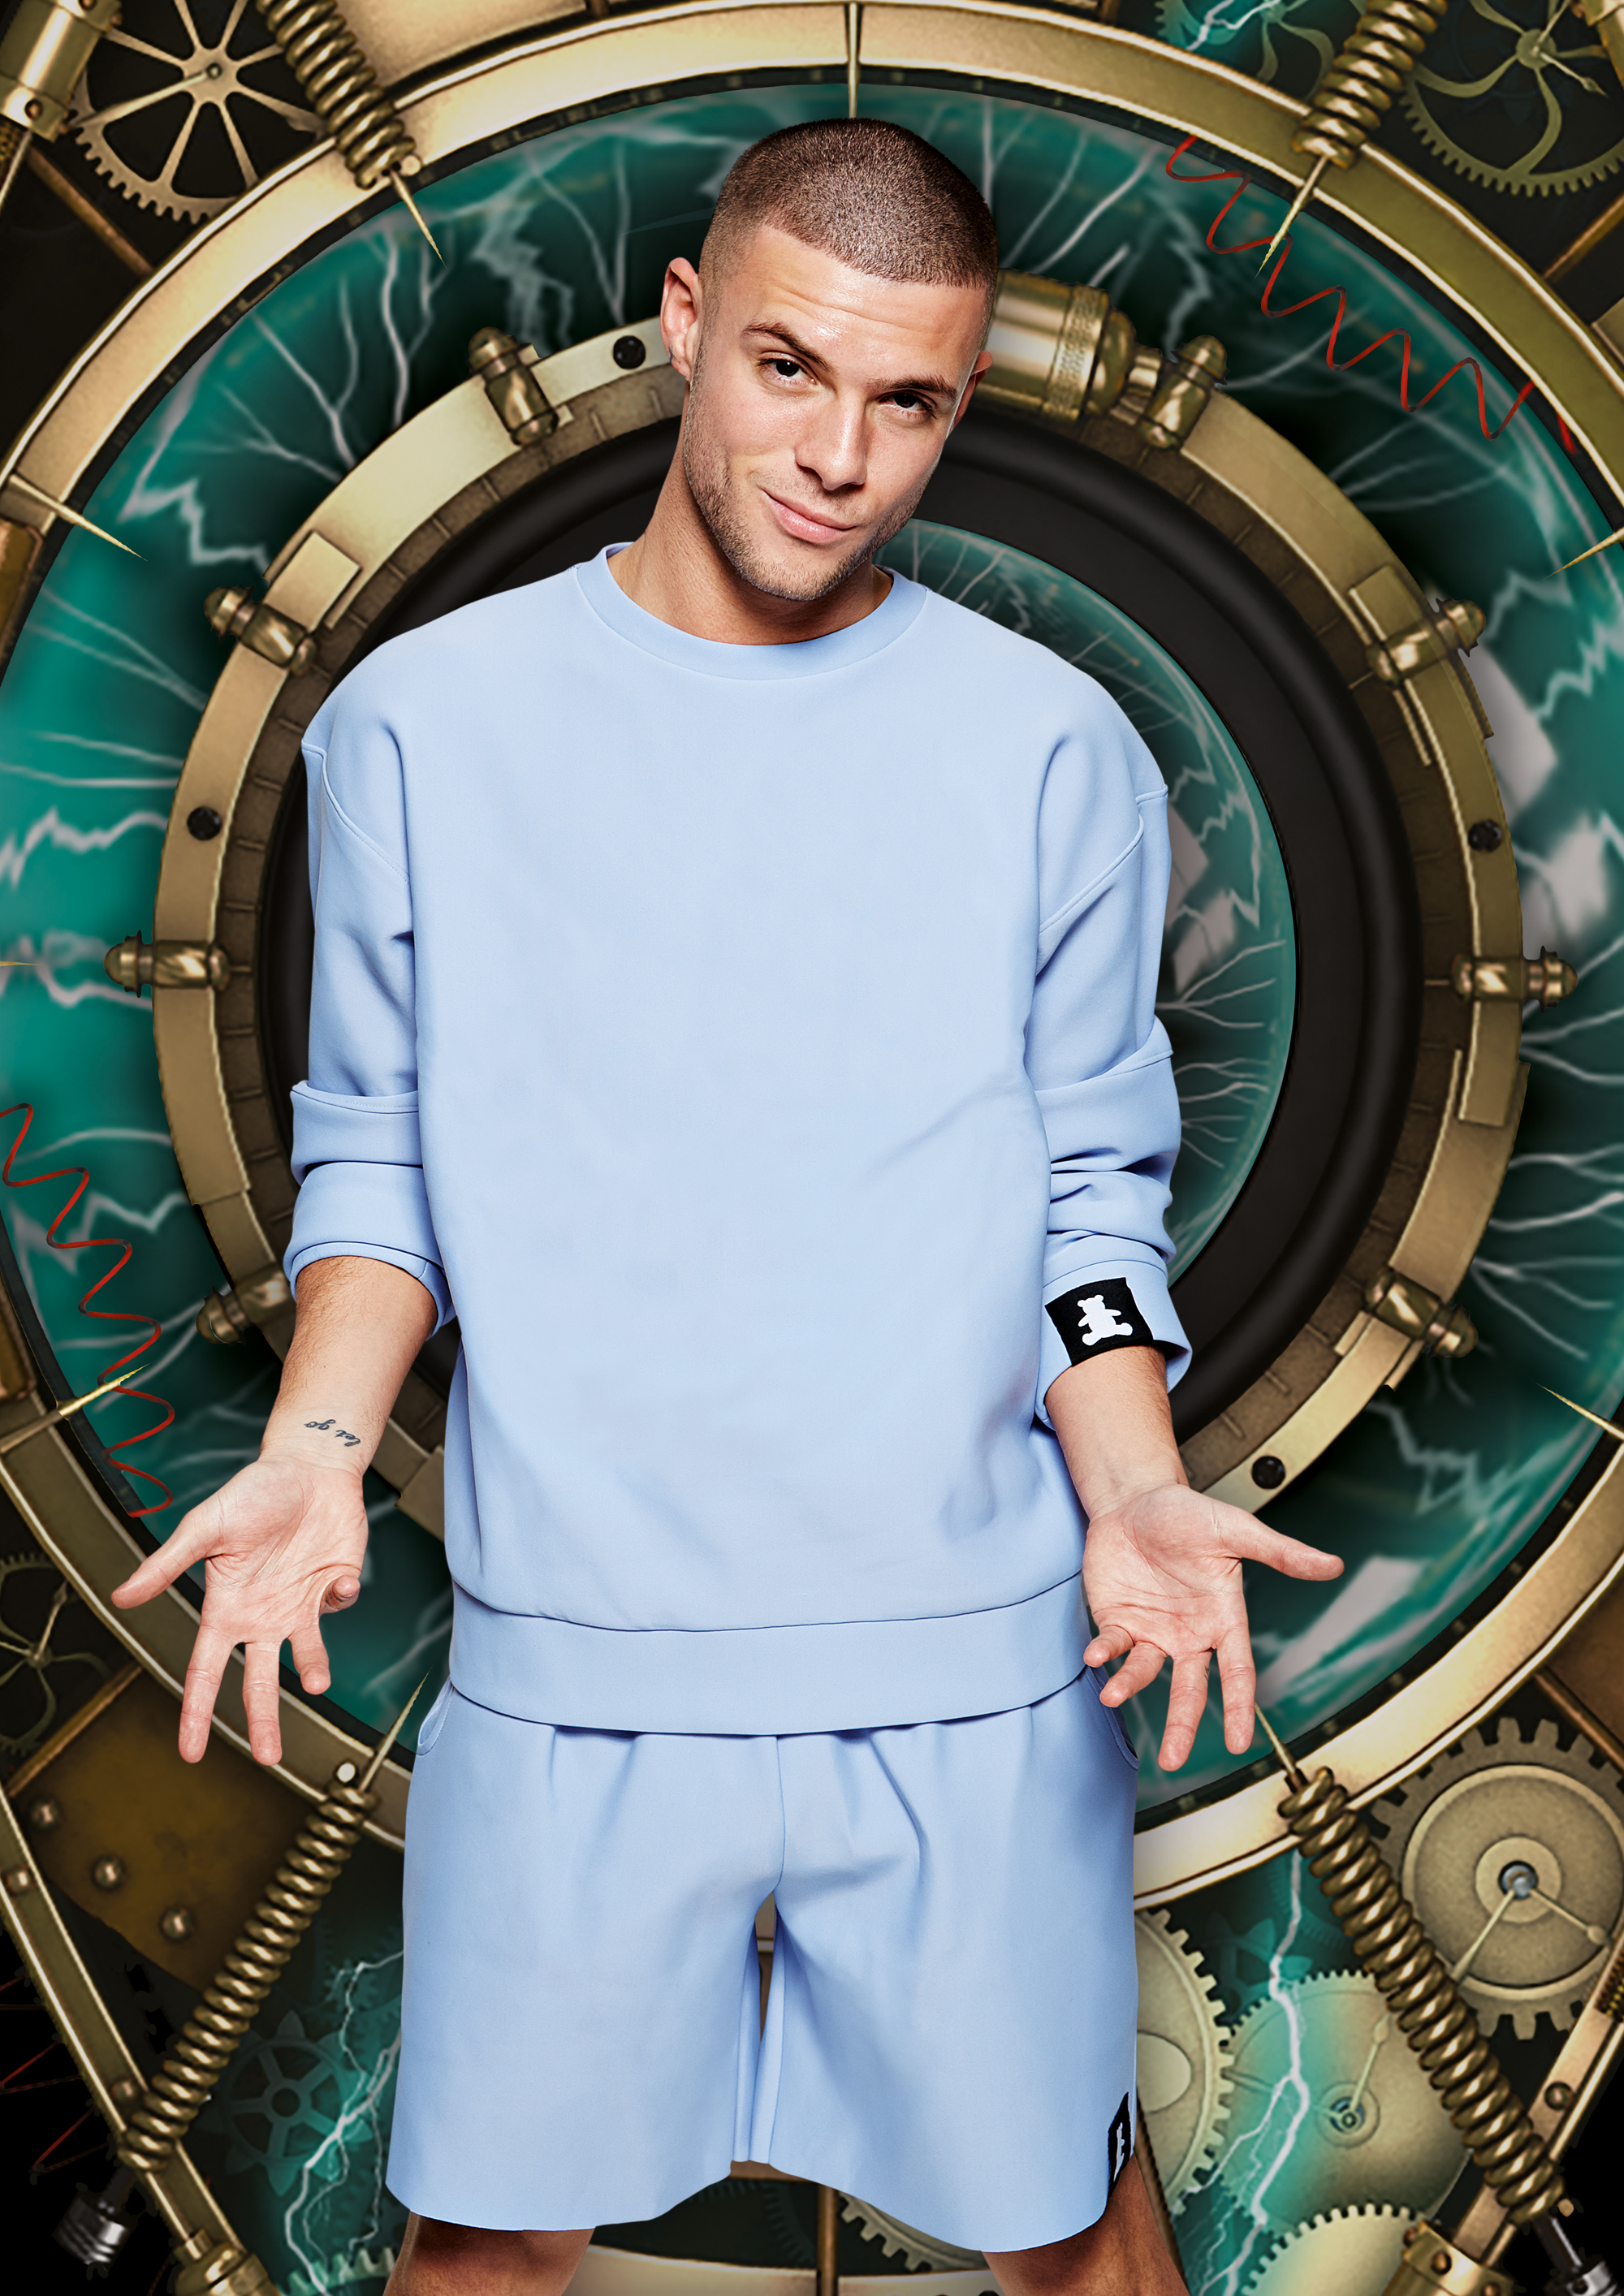 Big Brother 2015: Aaron cries as housemates name him 'least deserving' of his place in the house